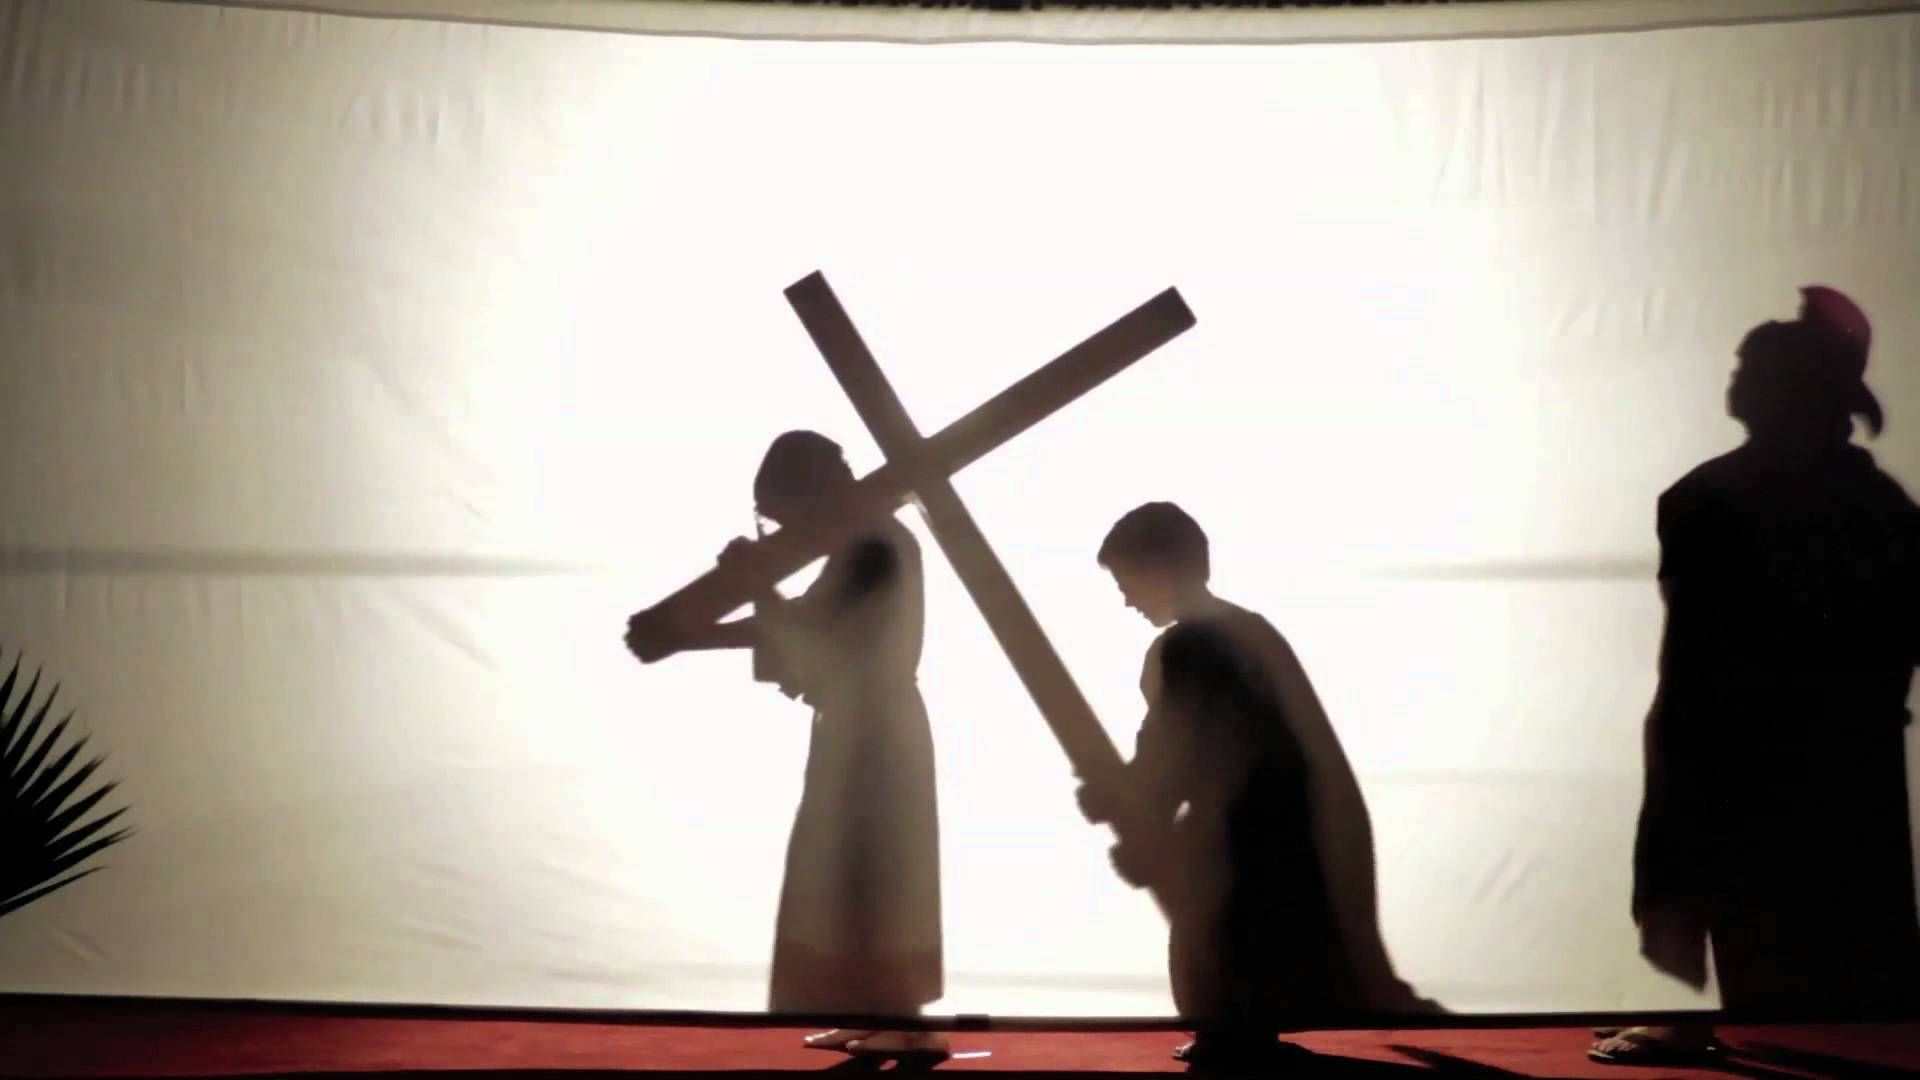 The Stations of the Cross, Shadow Play, this would be